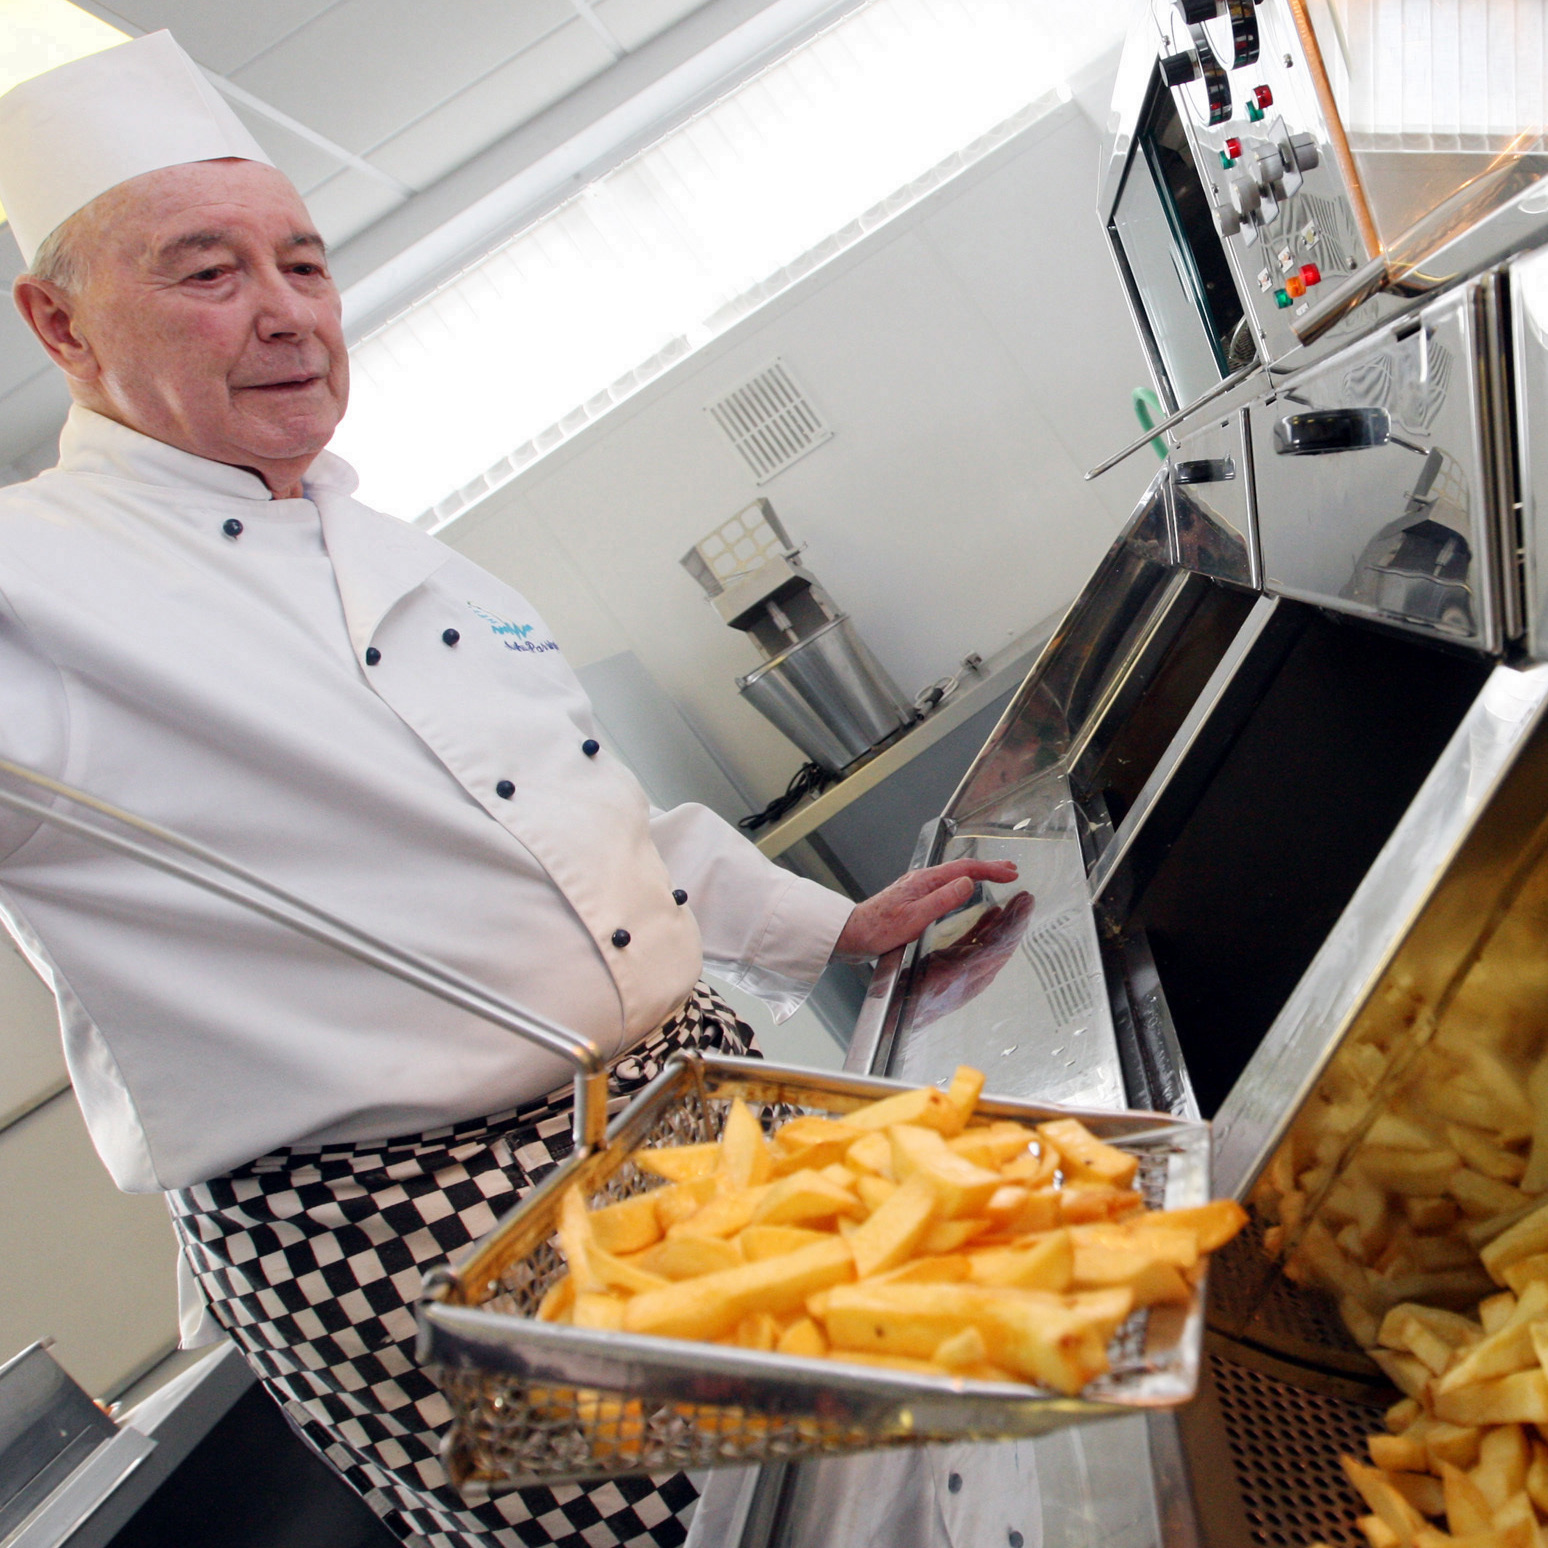 Potatoes meet oil in a chip-frying class a the National Federation of Fish Fryers headquarters in Leeds, England.